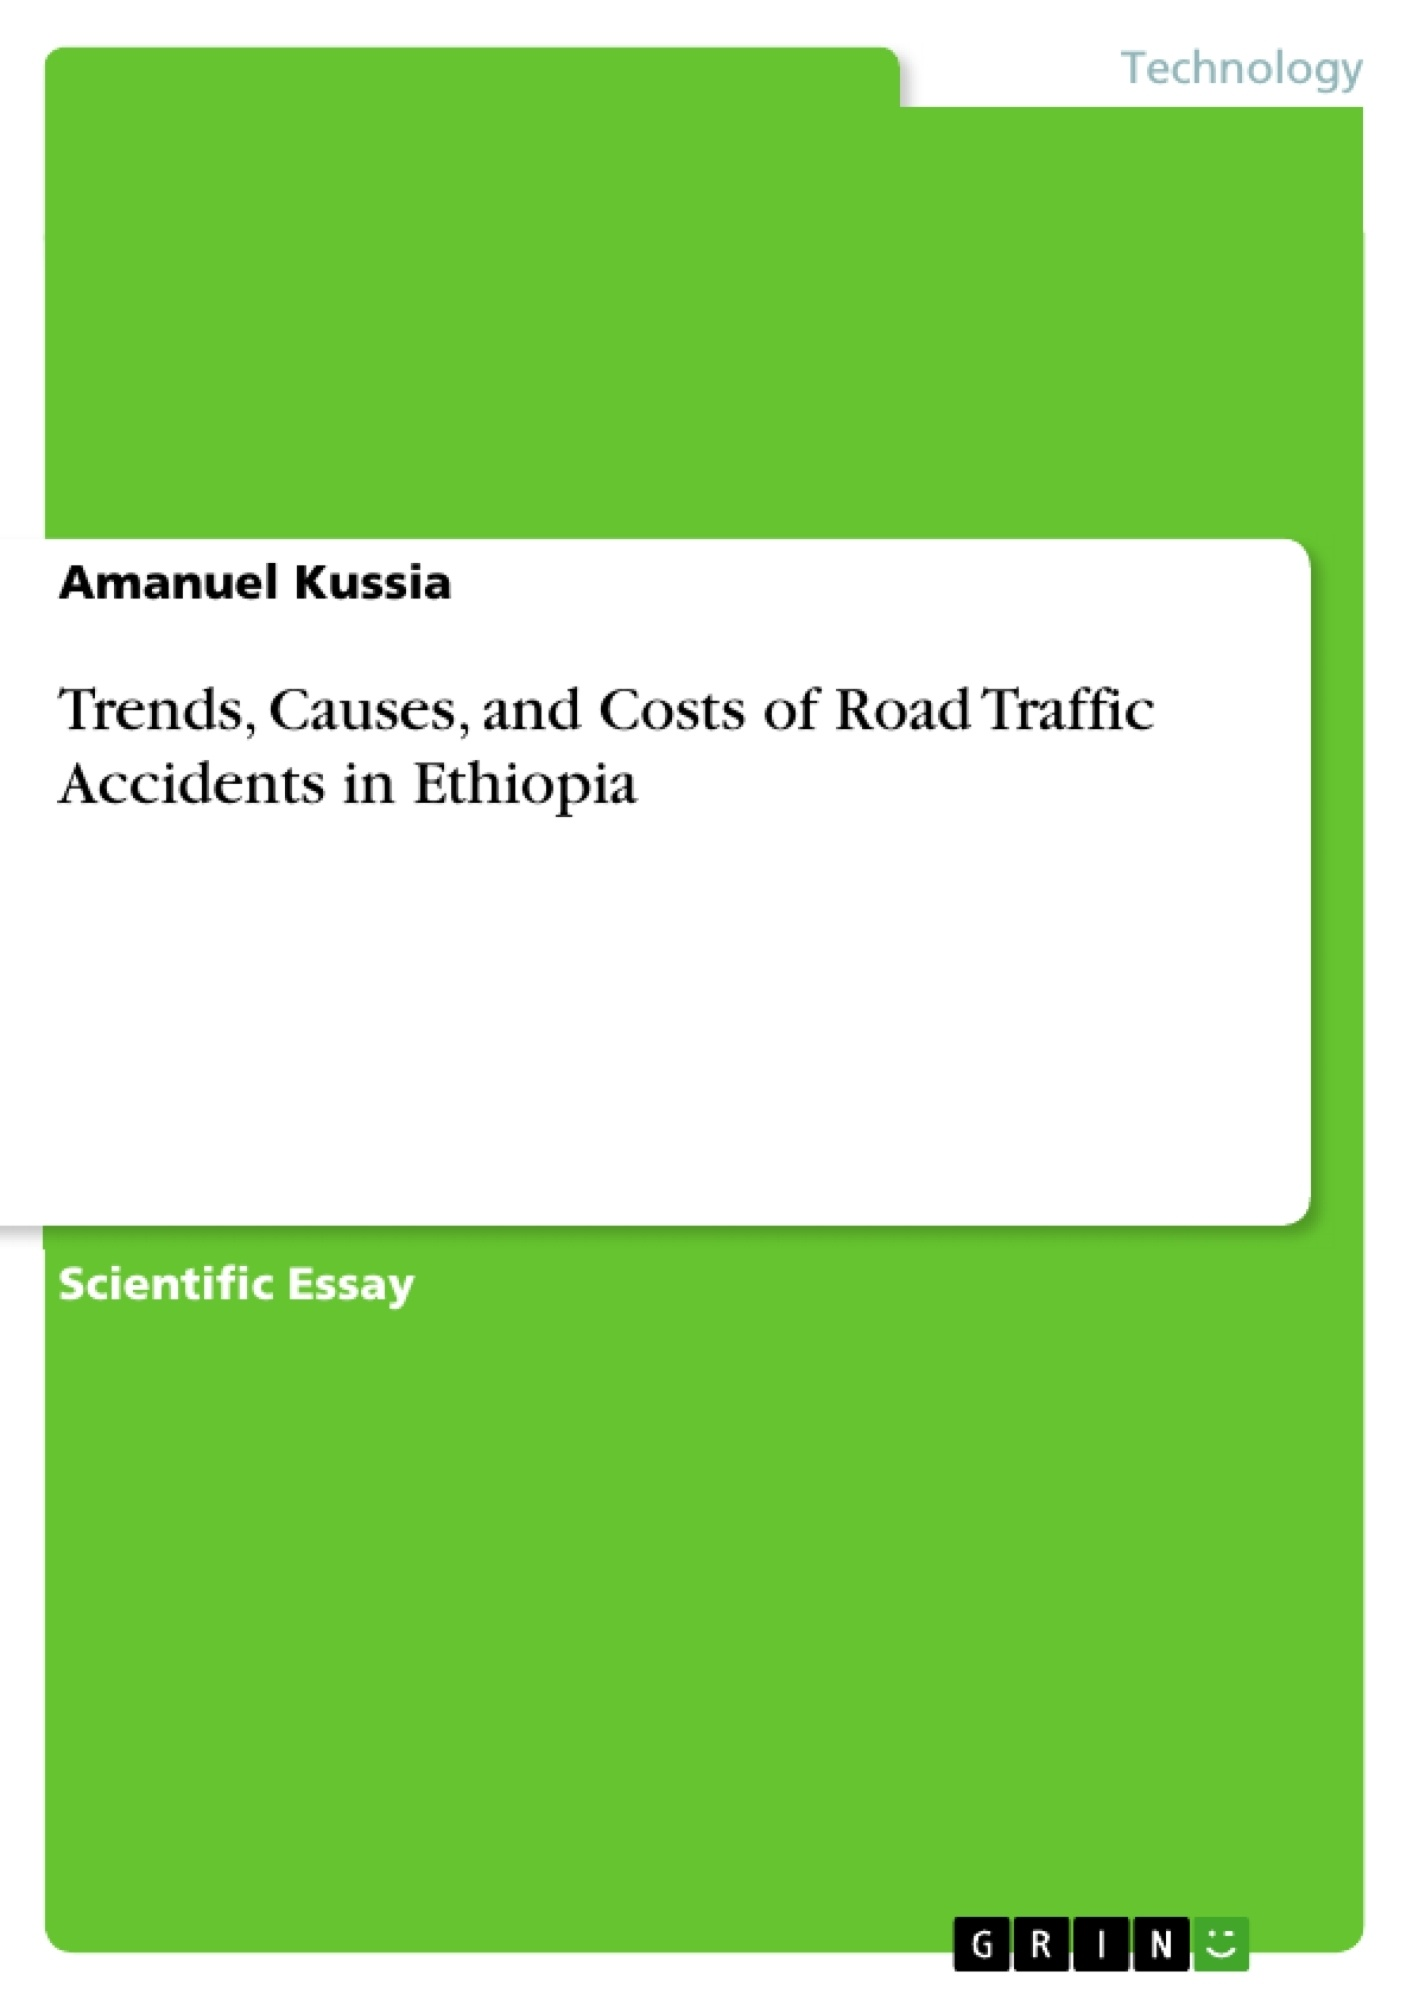 essay traffic accident Road accidents have earned india a dubious distinction with over 130,000 deaths annually, the country has overtaken china and now has the worst road traffic accident rate worldwide road accident is most unwanted thing to happen to a road user, though they happen quite often the most unfortunate.